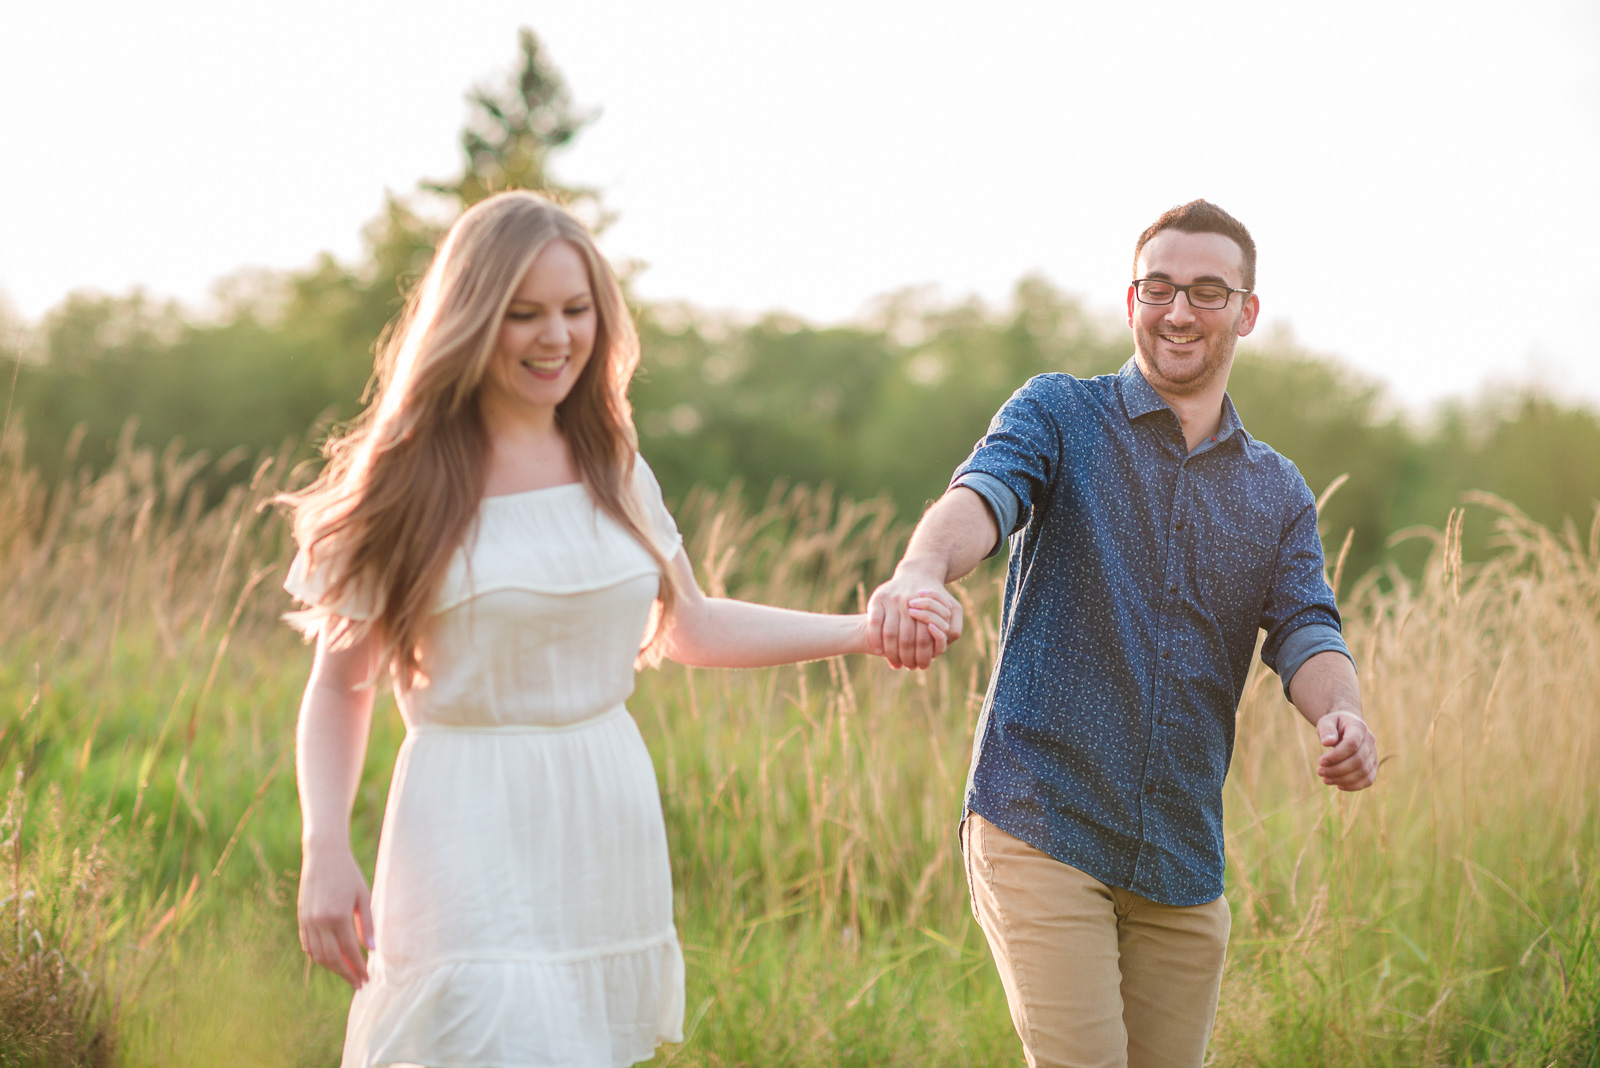 vancouver-island-wedding-photographers-campbell-valley-park-engagement-session-09.jpg